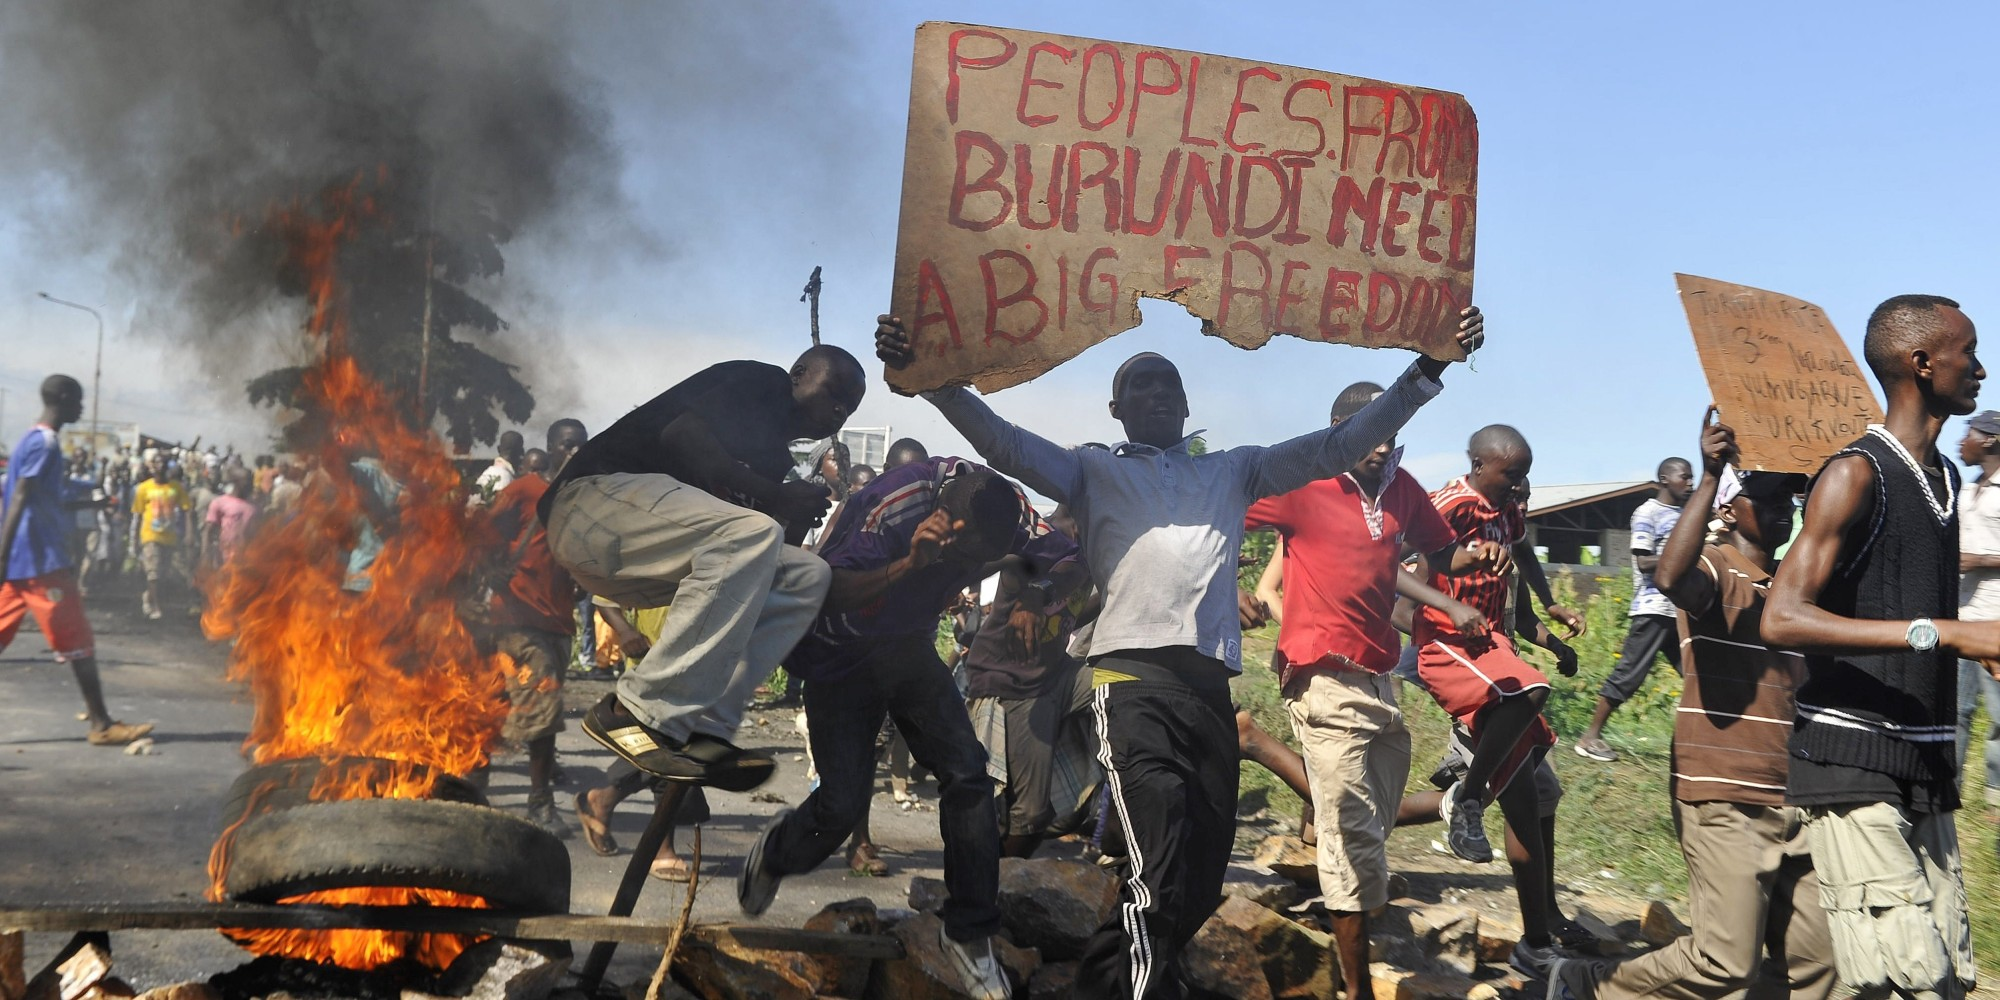 burundi - photo #46